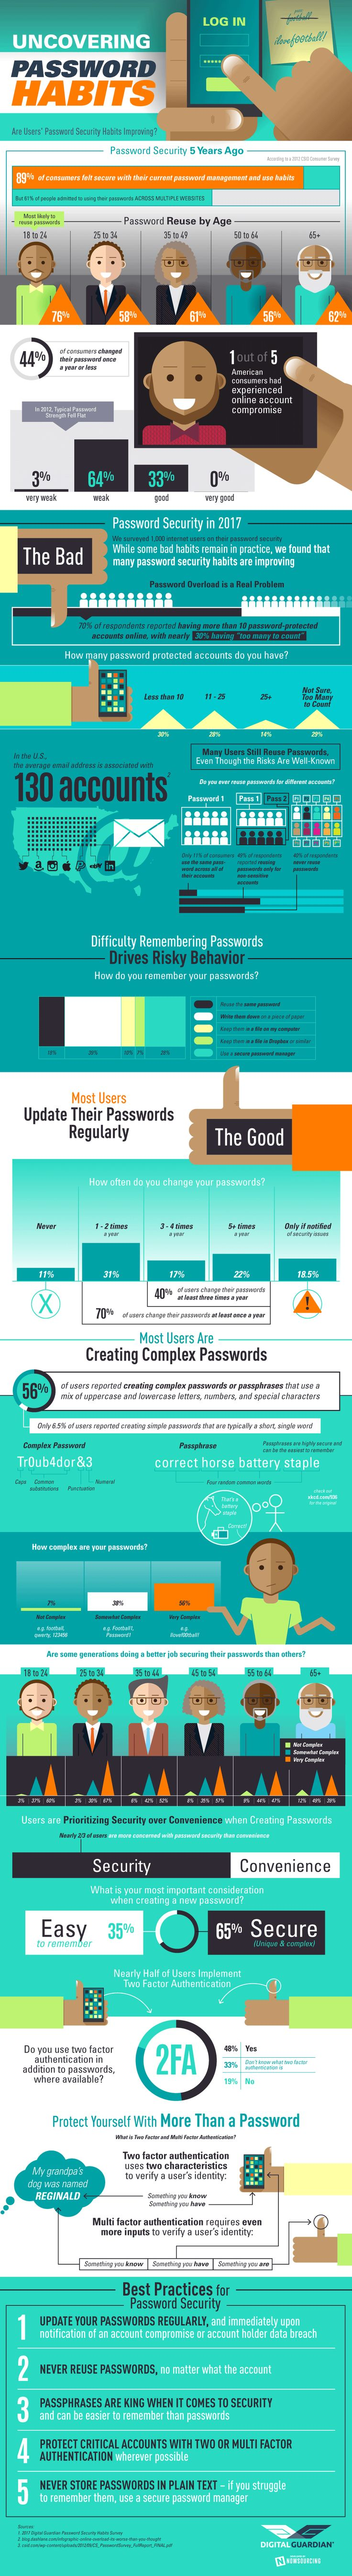 Password Security Habits #Infographic #Password #Security